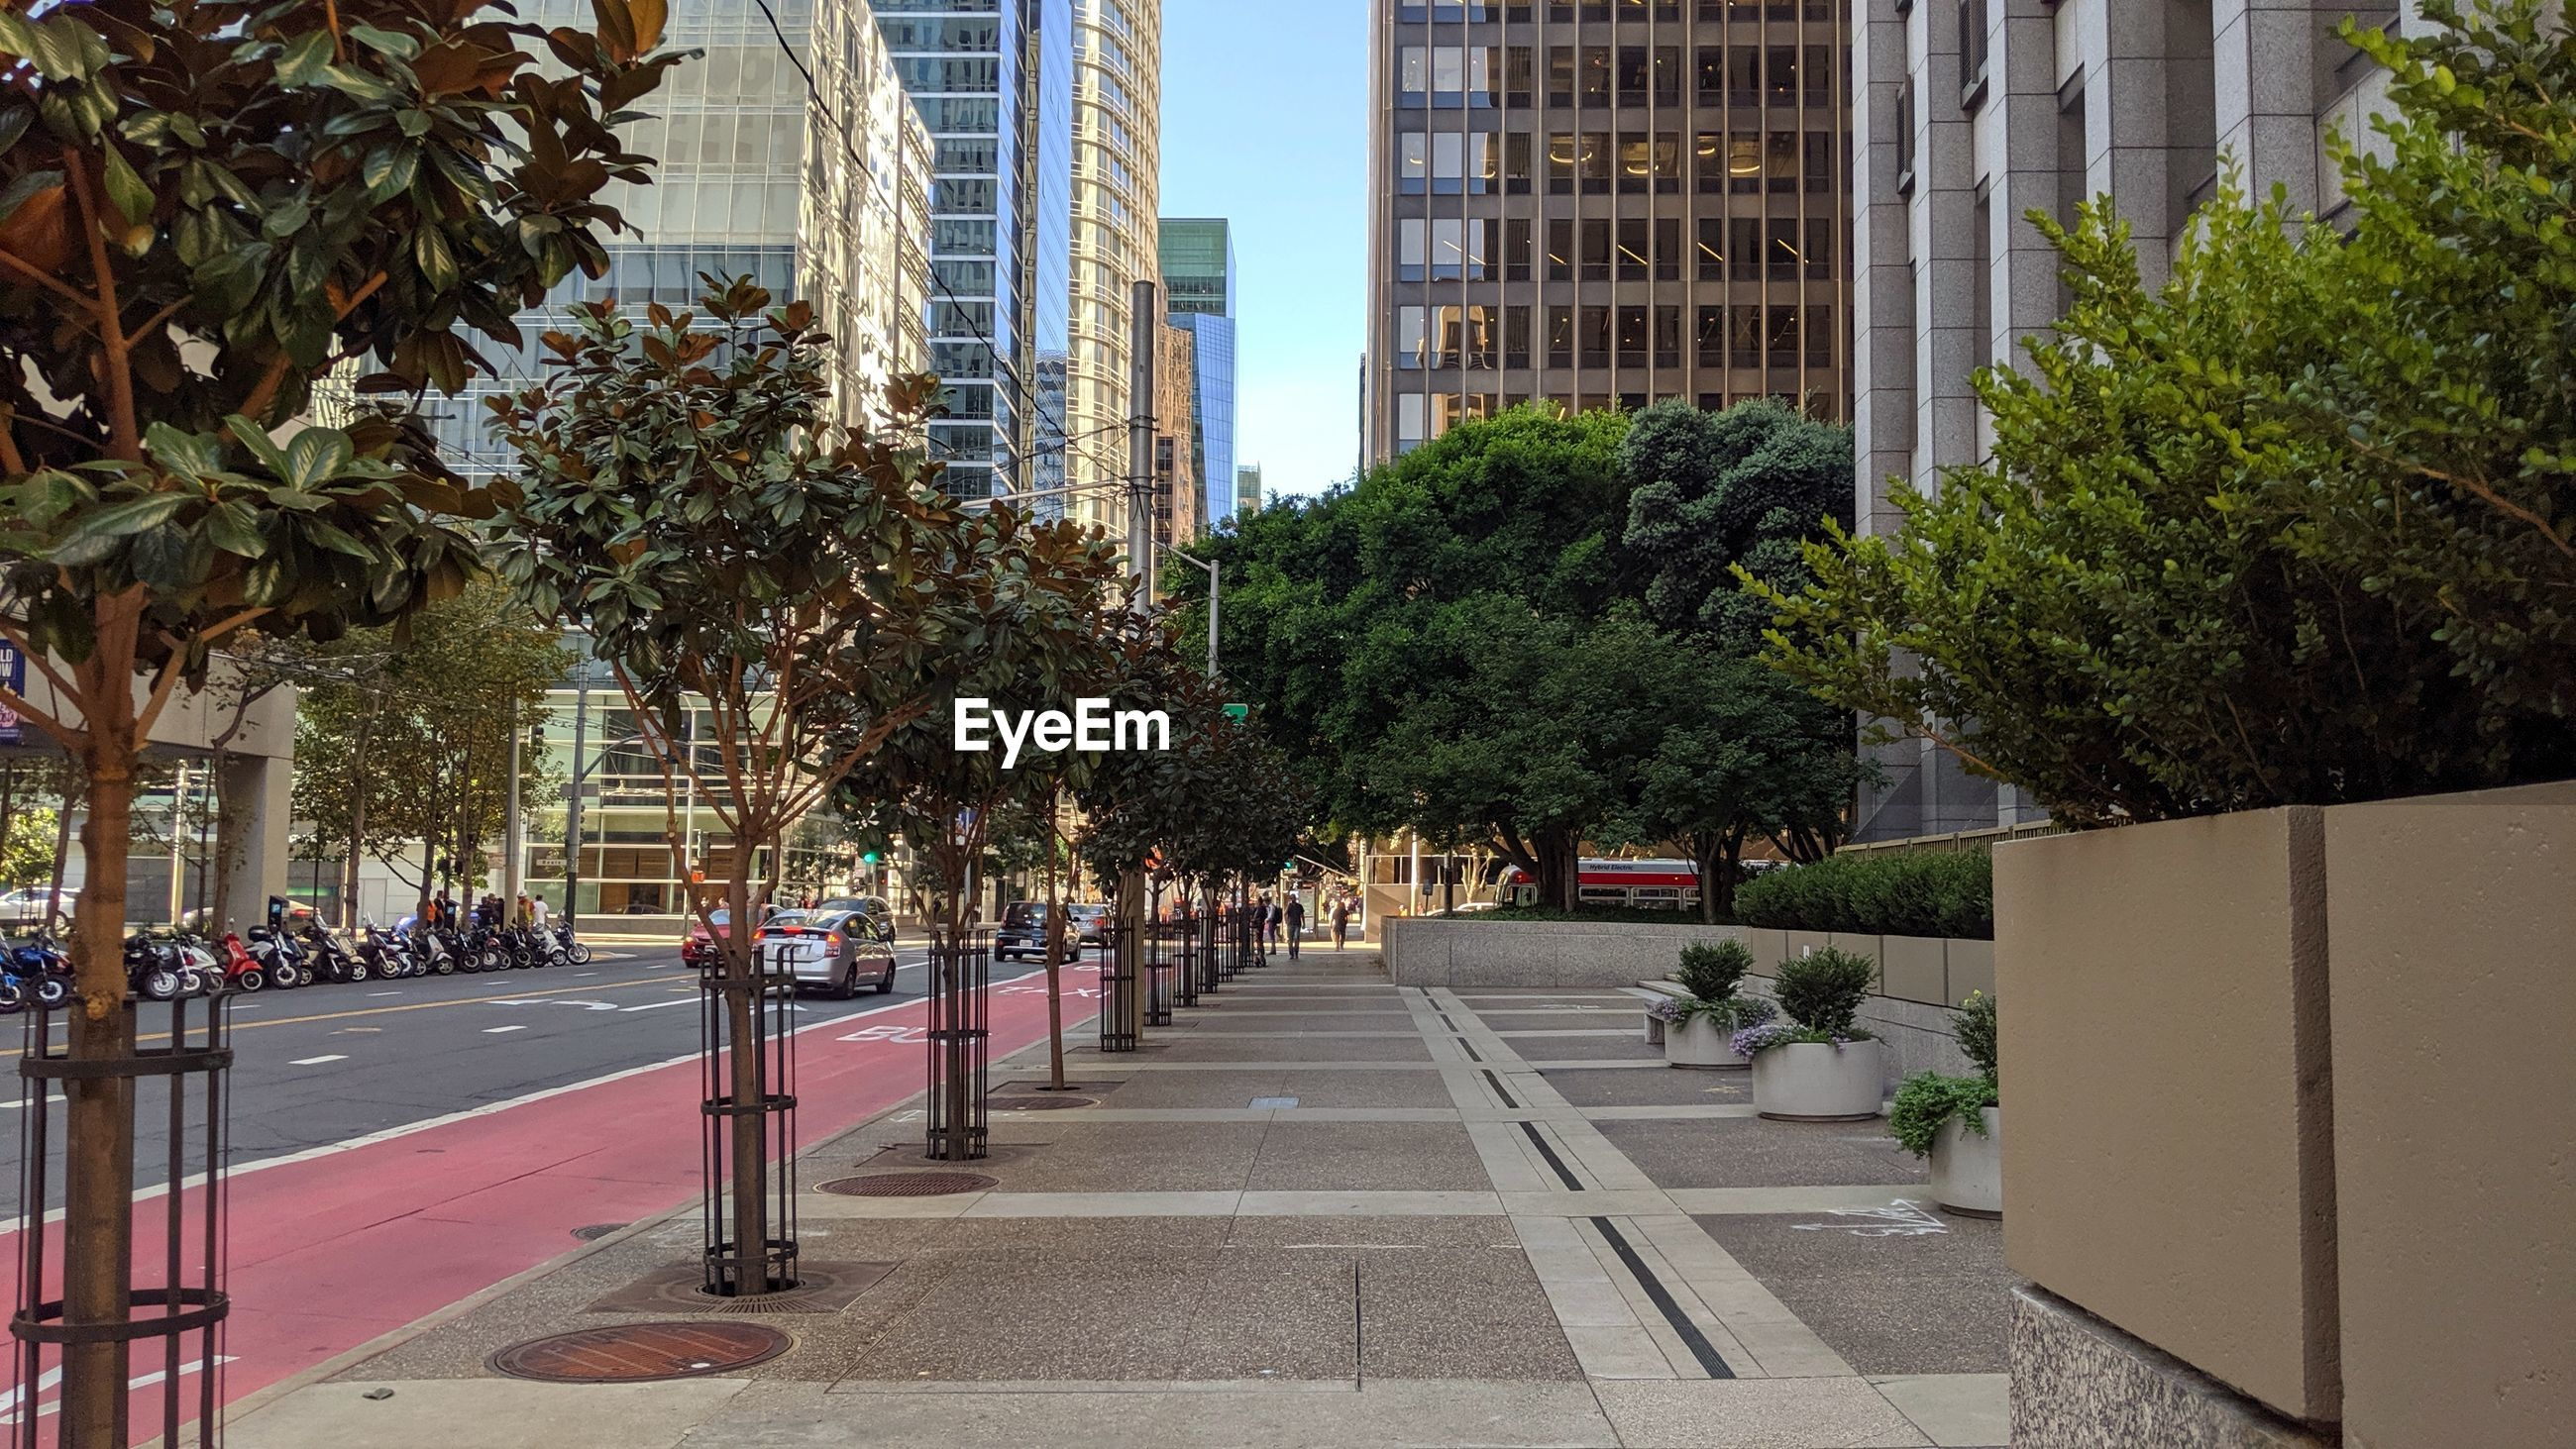 CITY STREET AMIDST TREES AND BUILDINGS